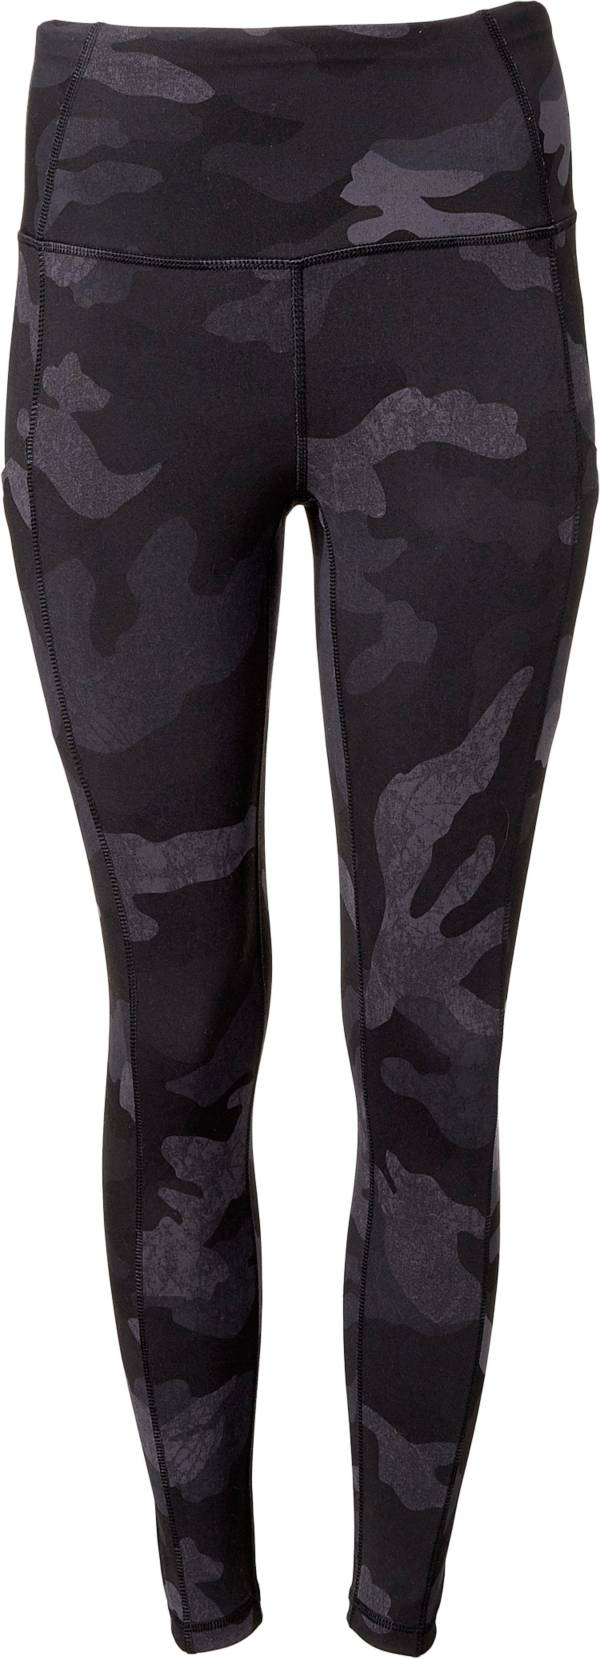 The North Face Women's Motivation High Rise 7/8 Tights product image